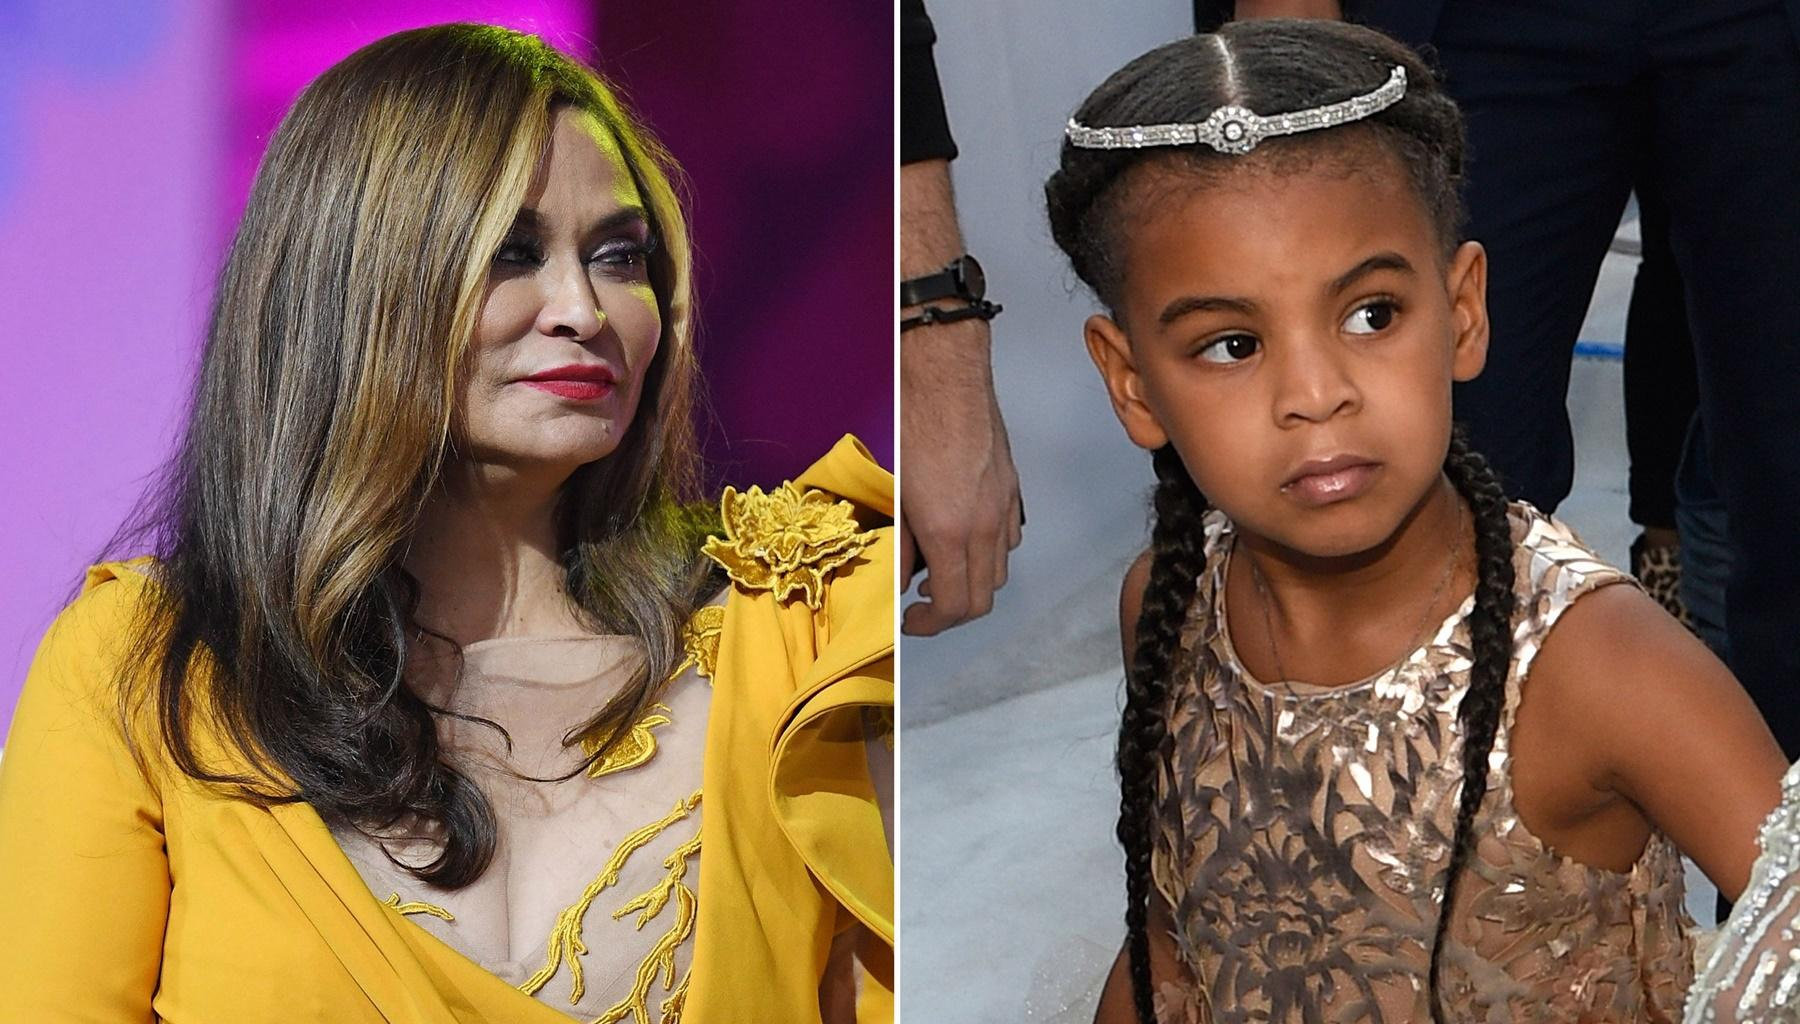 Beyonce's Daughter Blue Ivy Carter Joins Tina Knowles Lawson For Corny Joke Time Video -- Fans Are Loving Her Pretty Nails